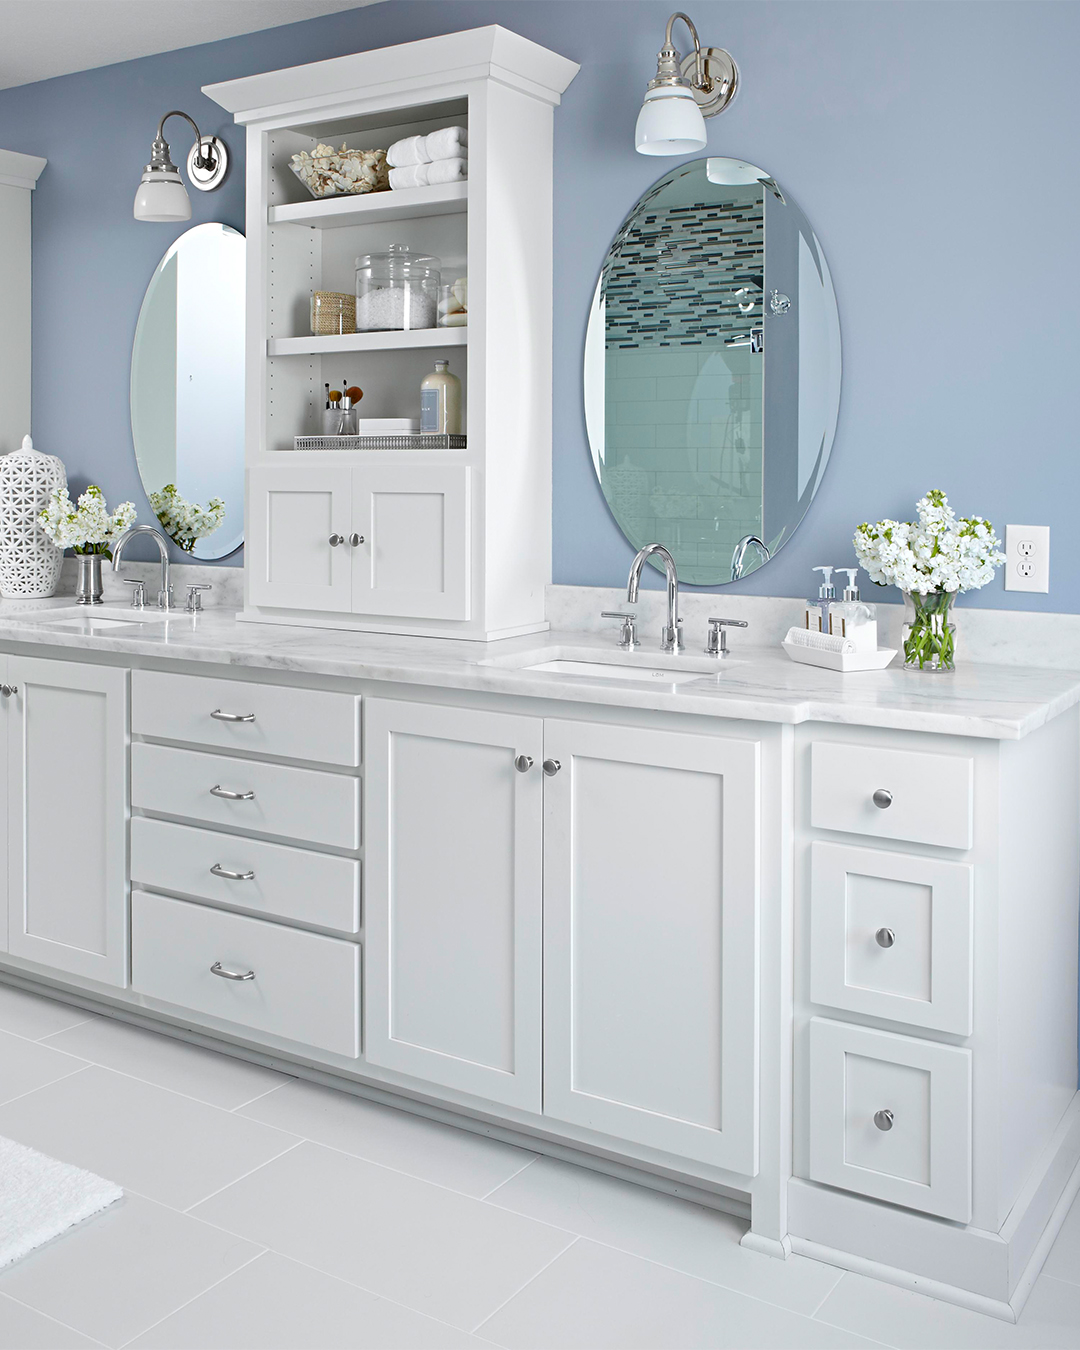 Bathroom Paints The 12 Best Bathroom Paint Colors Our Editors Swear By